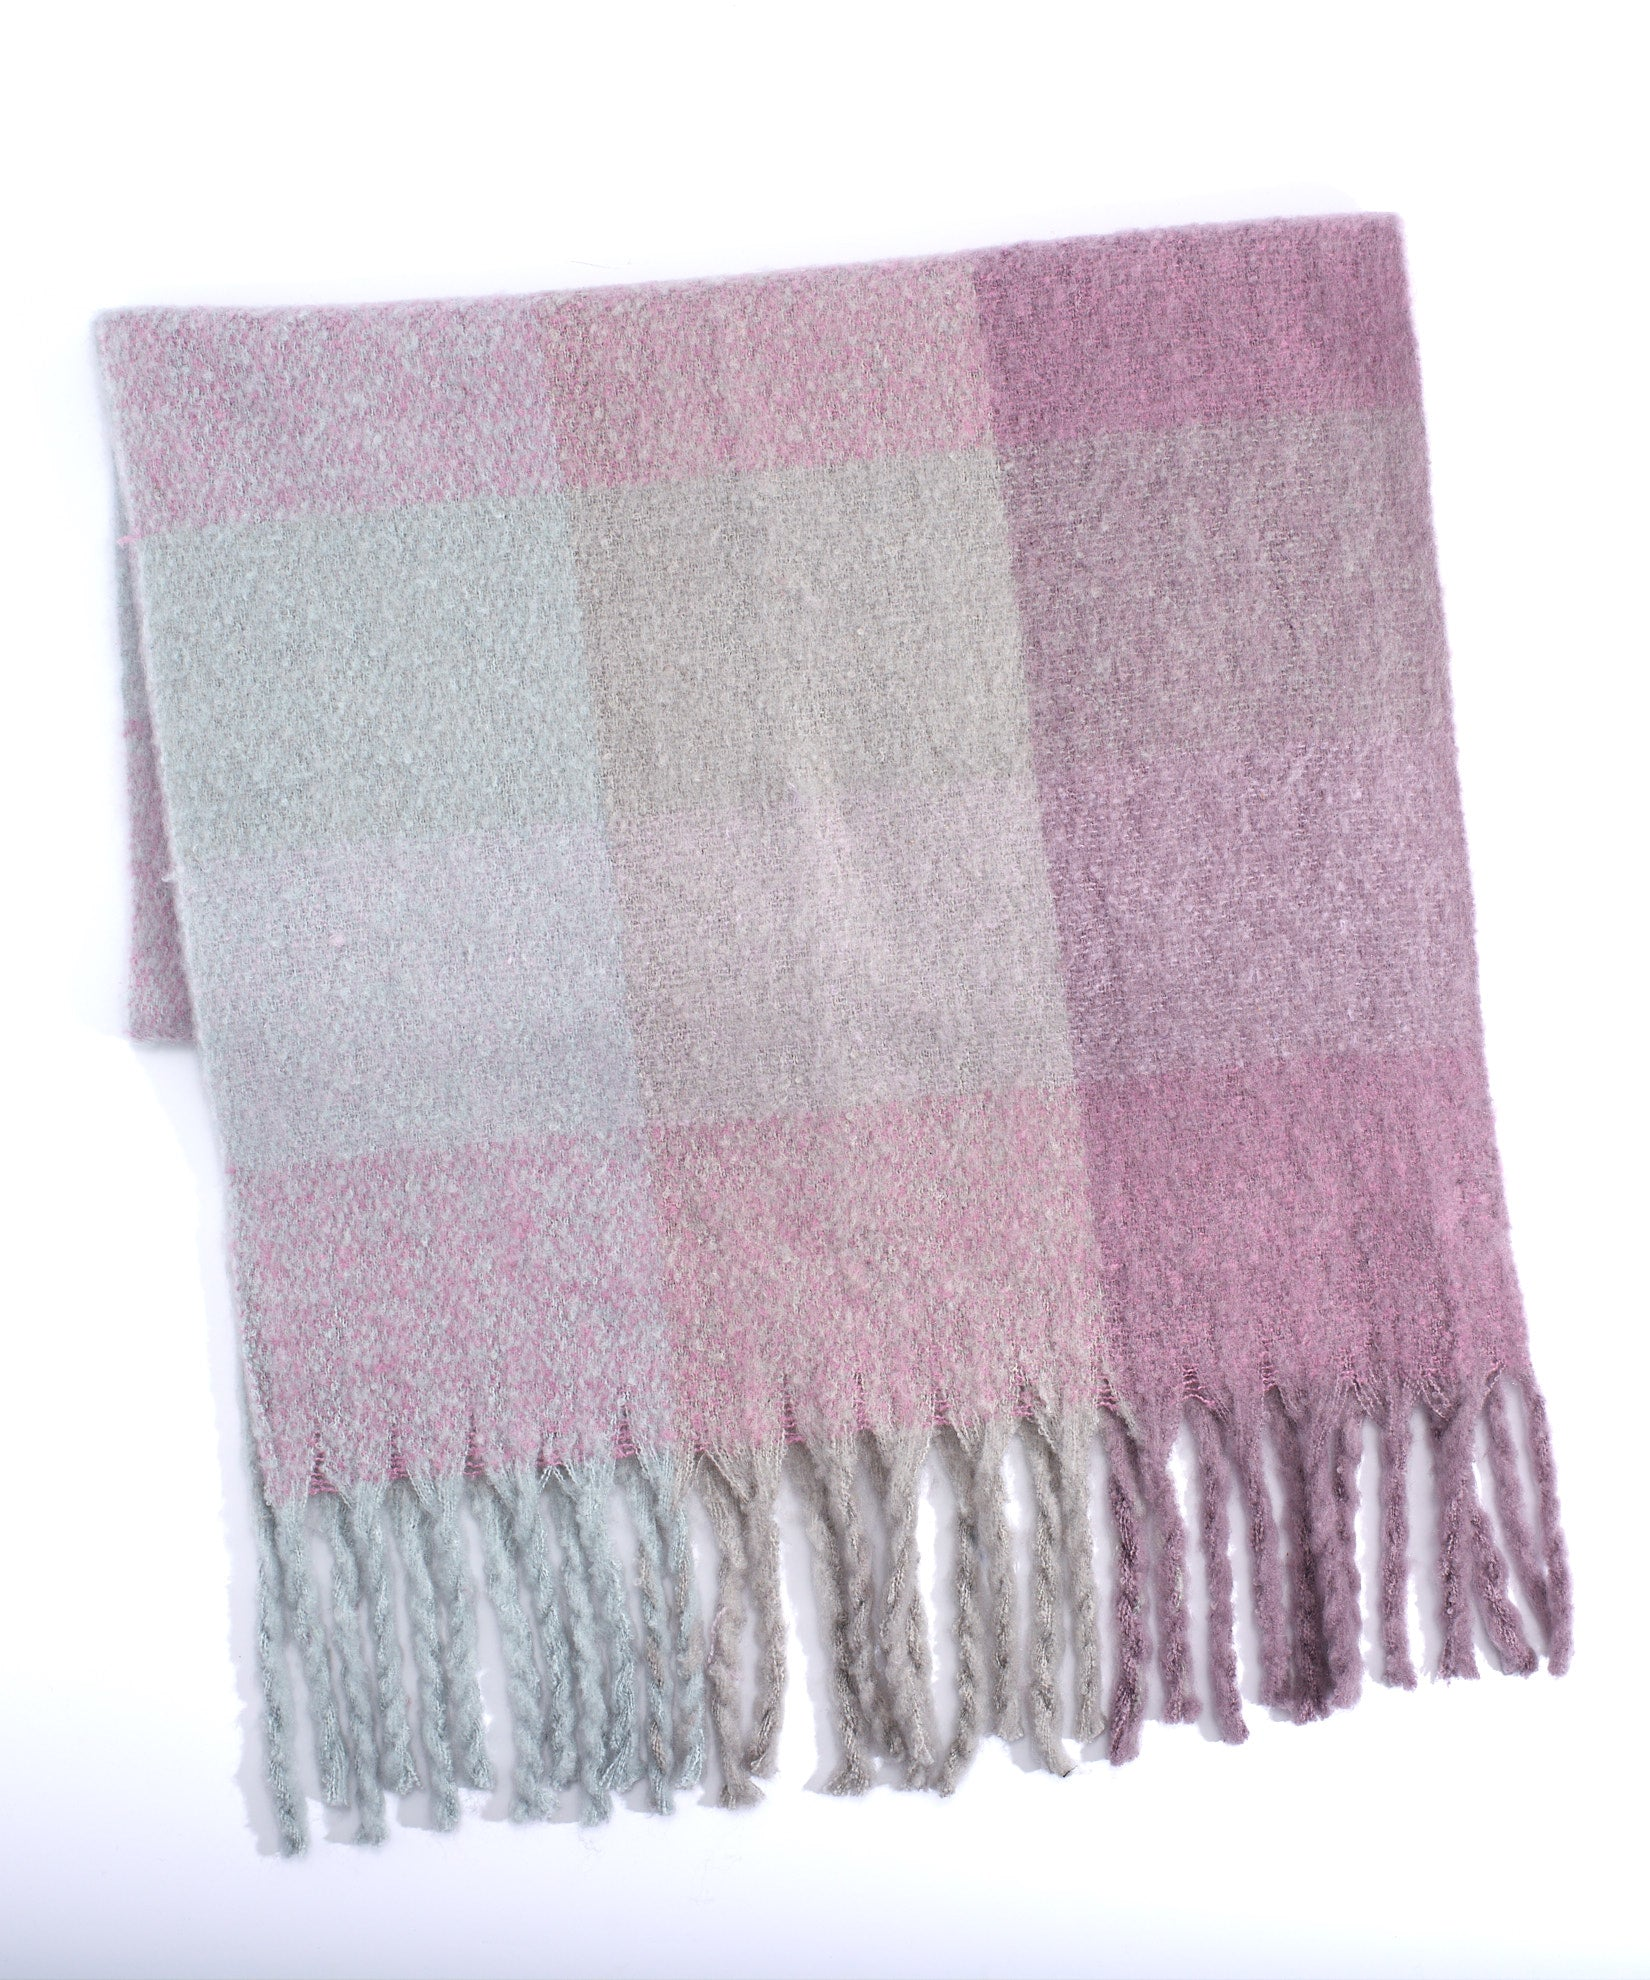 Smoked Lilac - Lofty Plaid Muffler With Fringe